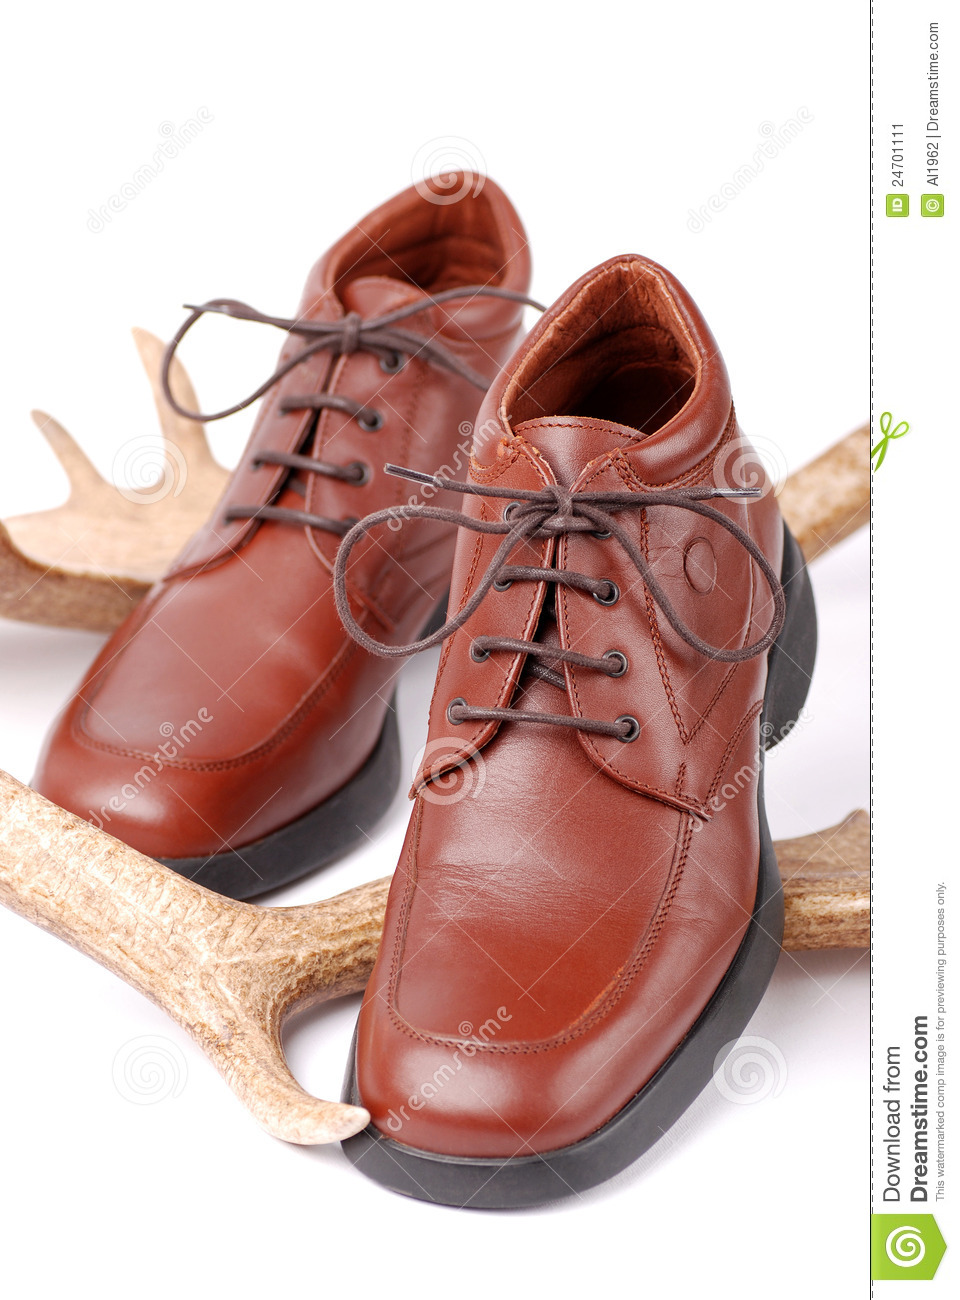 Leather Shoes Stock Image - Image: 24701111